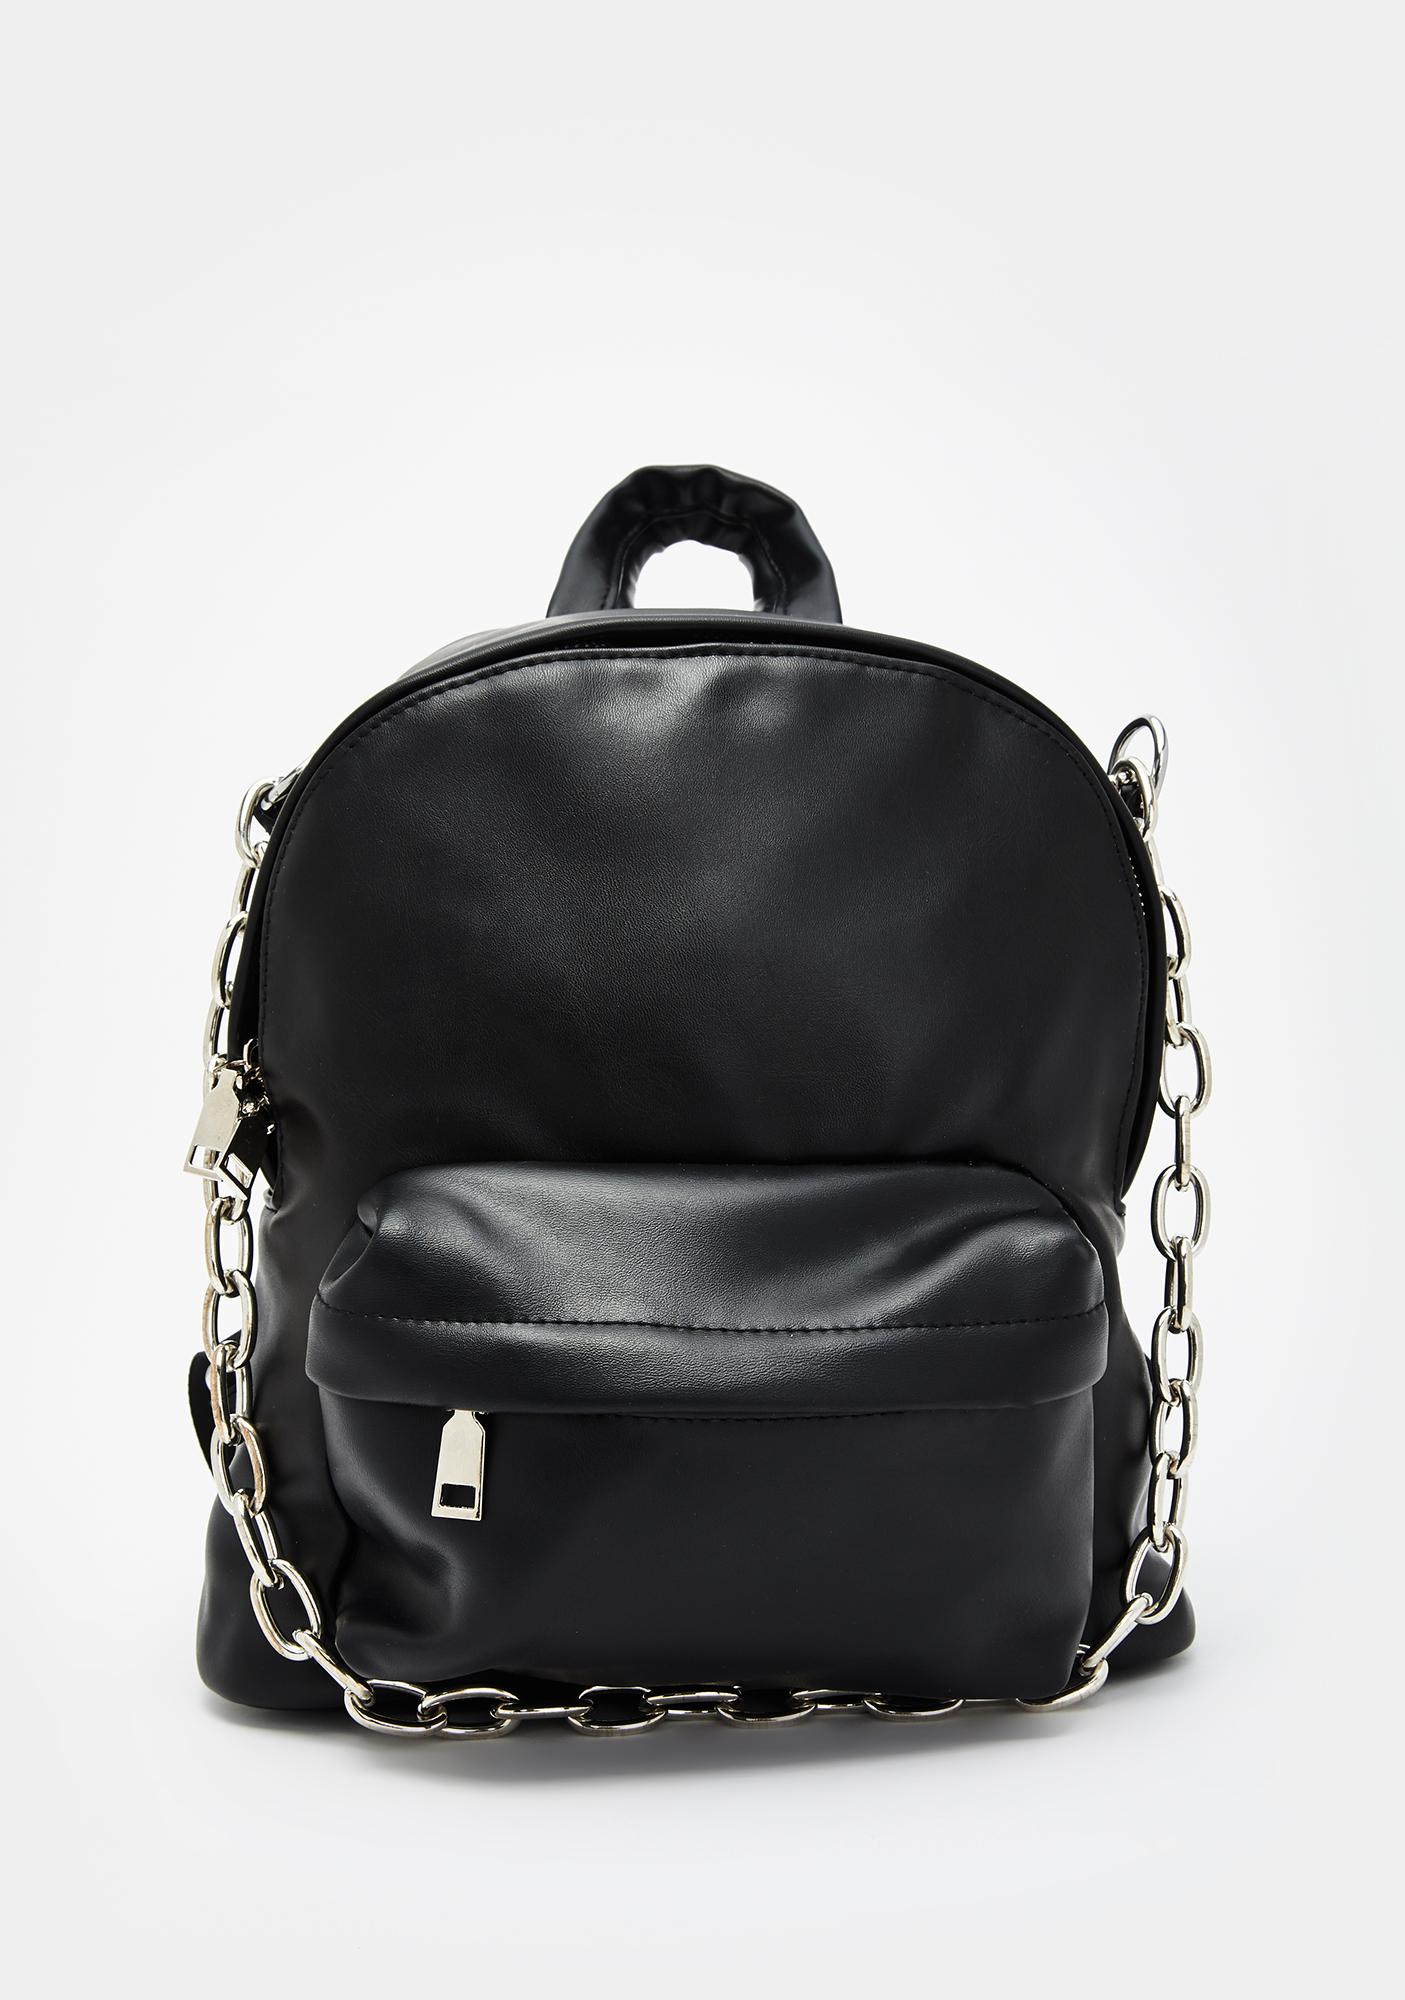 Call Me Trouble Chain Backpack